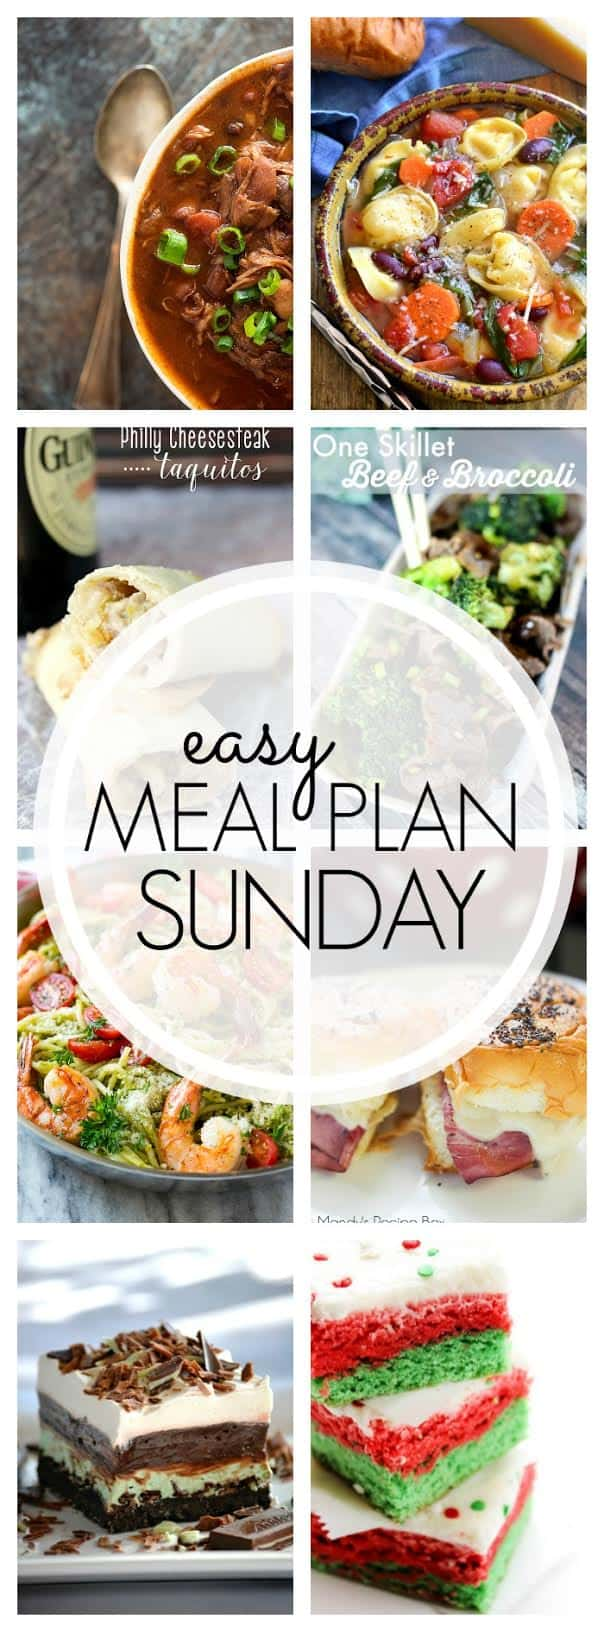 The BEST Weekly Meal Plan! 6 dinners, 1 breakfast, and 2 desserts.....all perfect for cozying up in this cold winter weather!